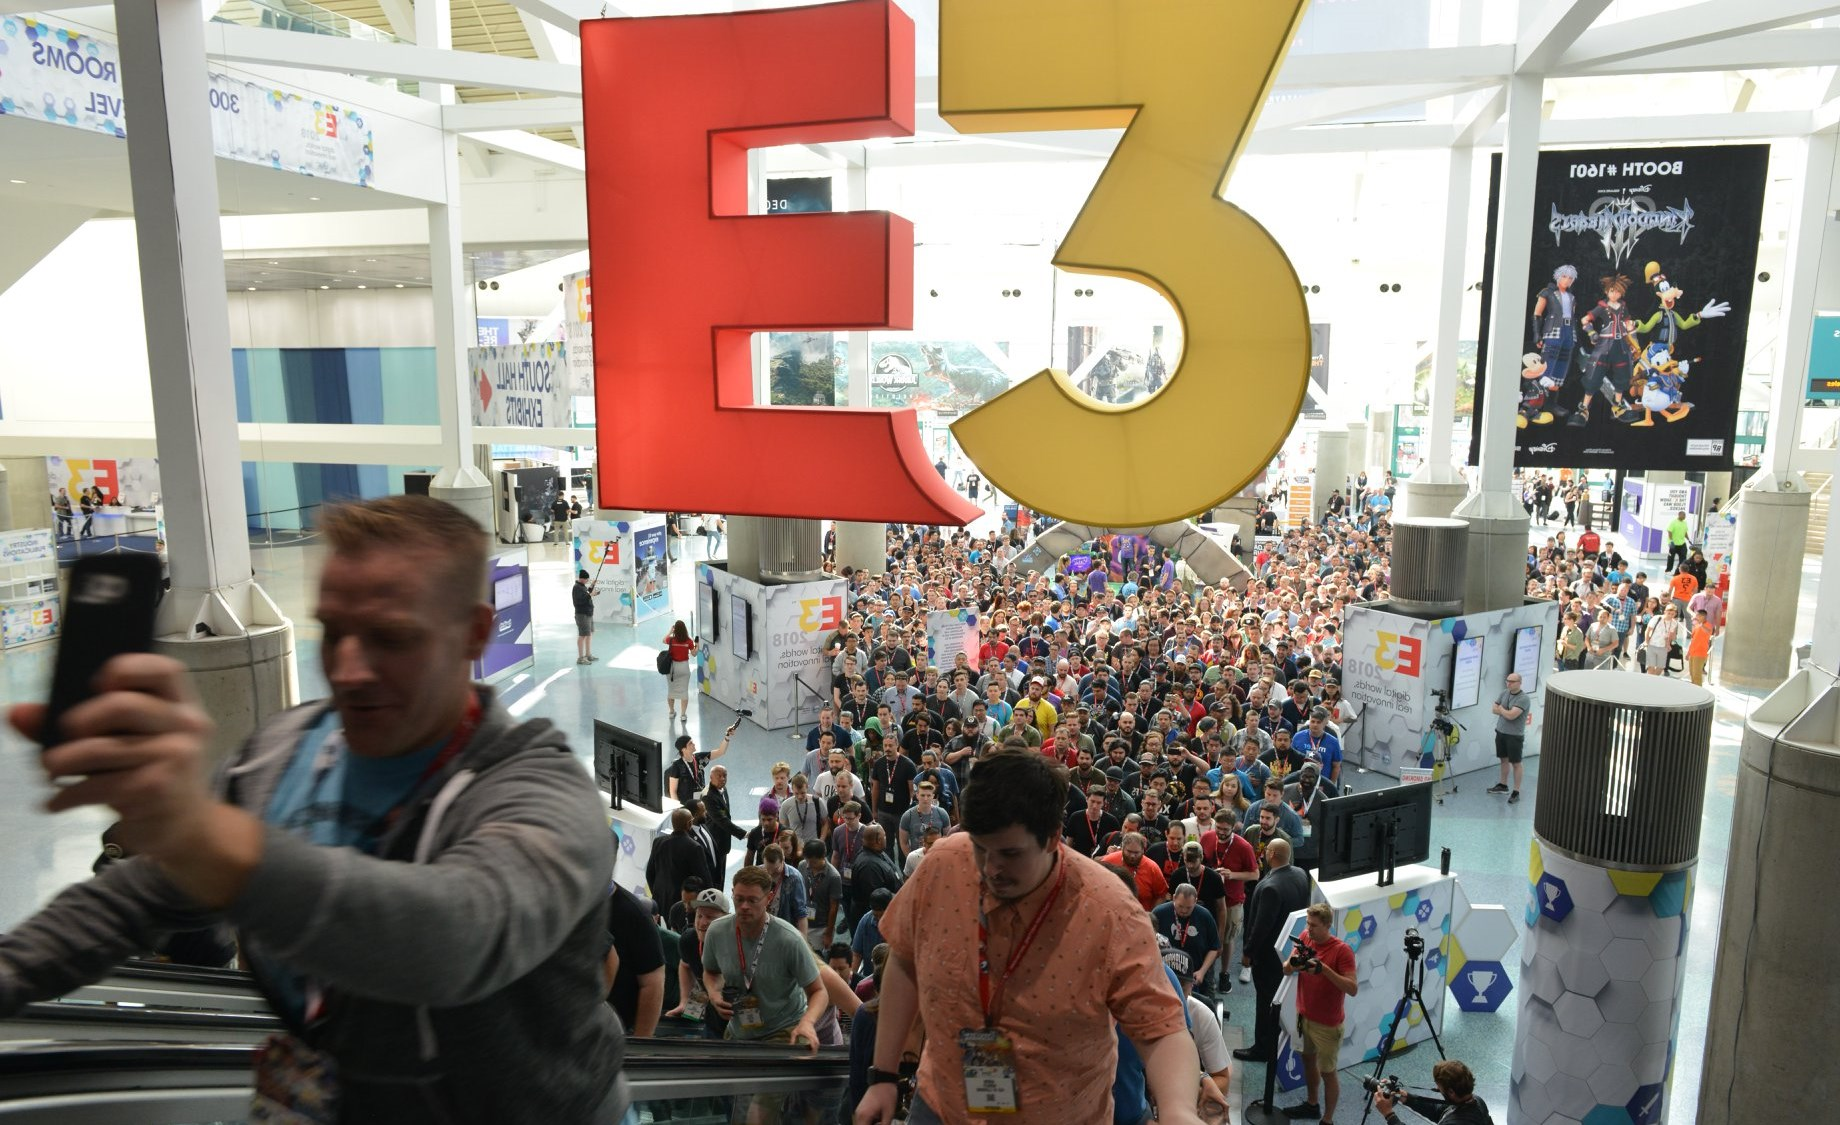 Unsurprisingly, E3 2021's live event seems to have been cancelled